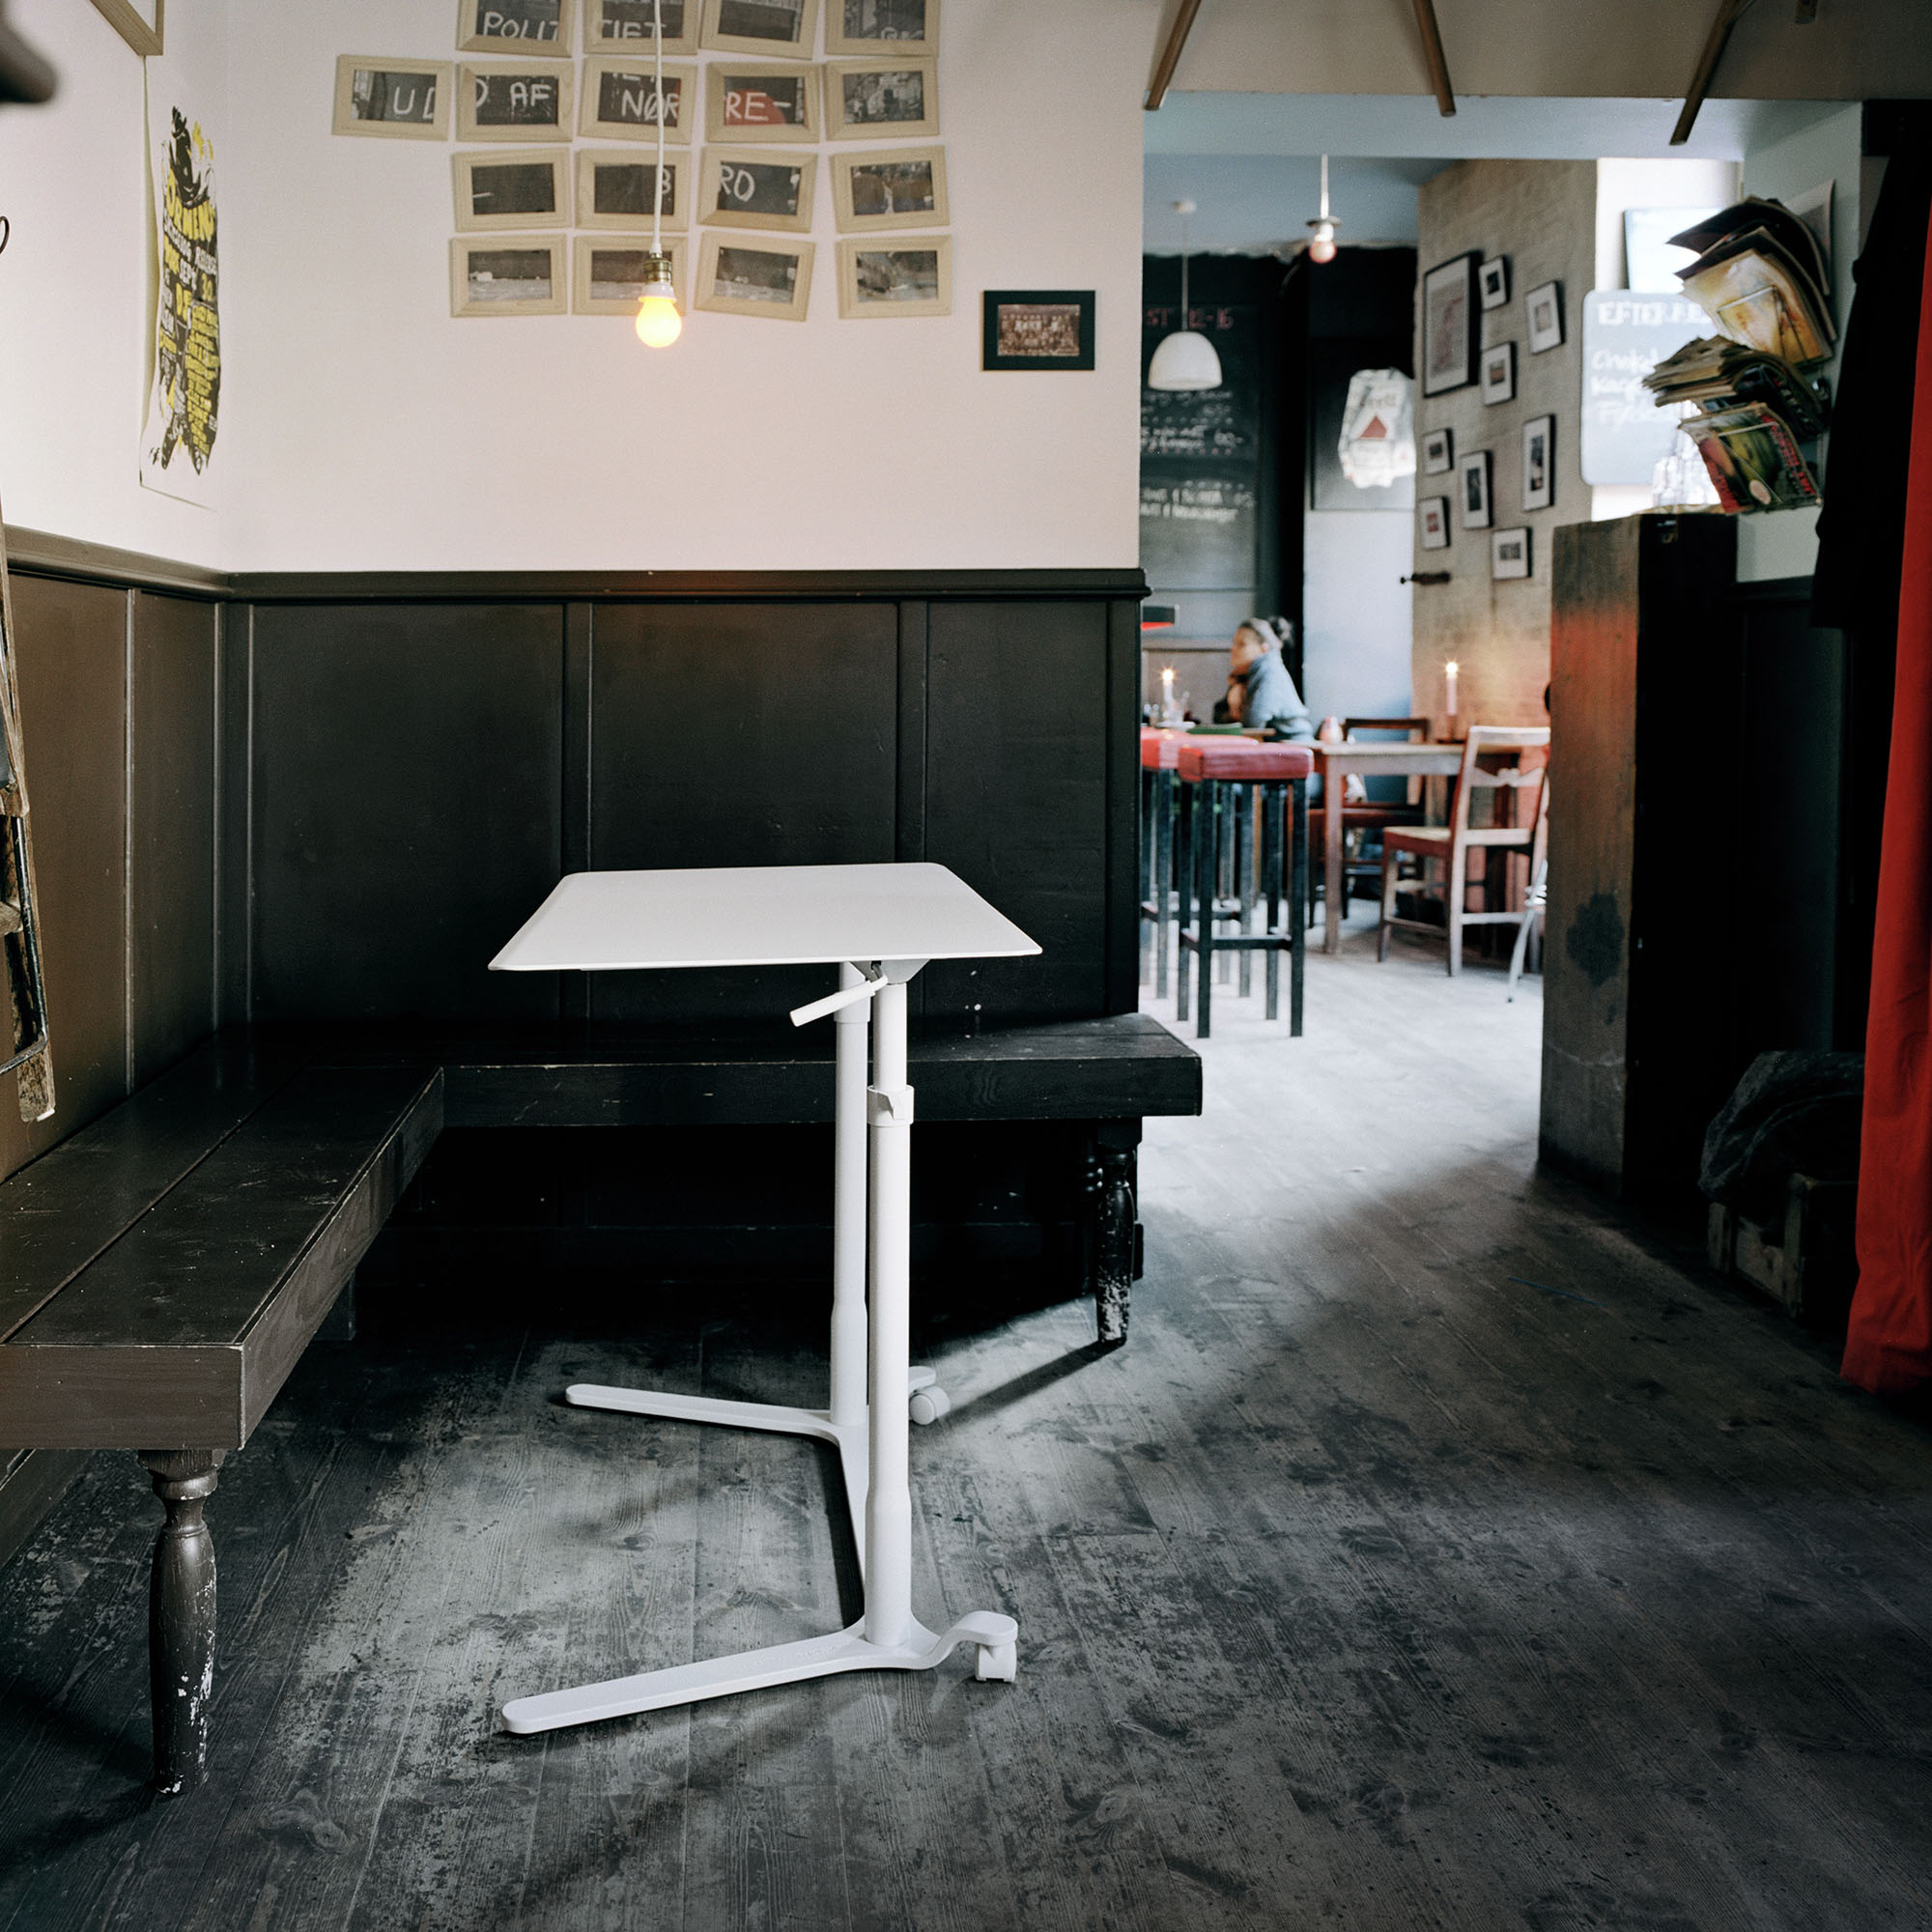 Haworth office furniture 'Space Enabler' at a bar in Copenhagen